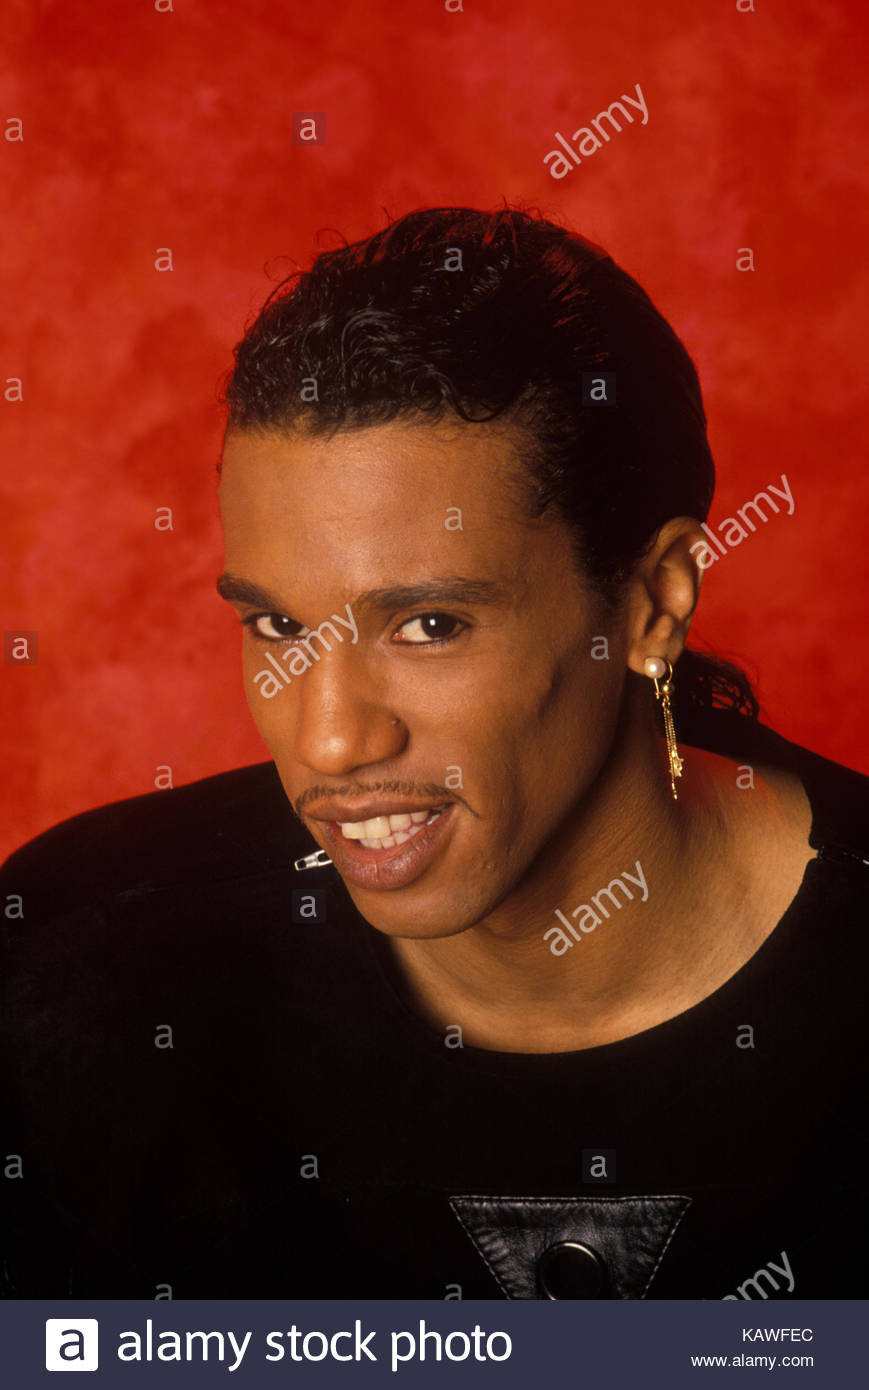 Robby Goble of the band Kool and the Gang during a studio photo shoot on November 23, 1992 in New York City. - Stock Image